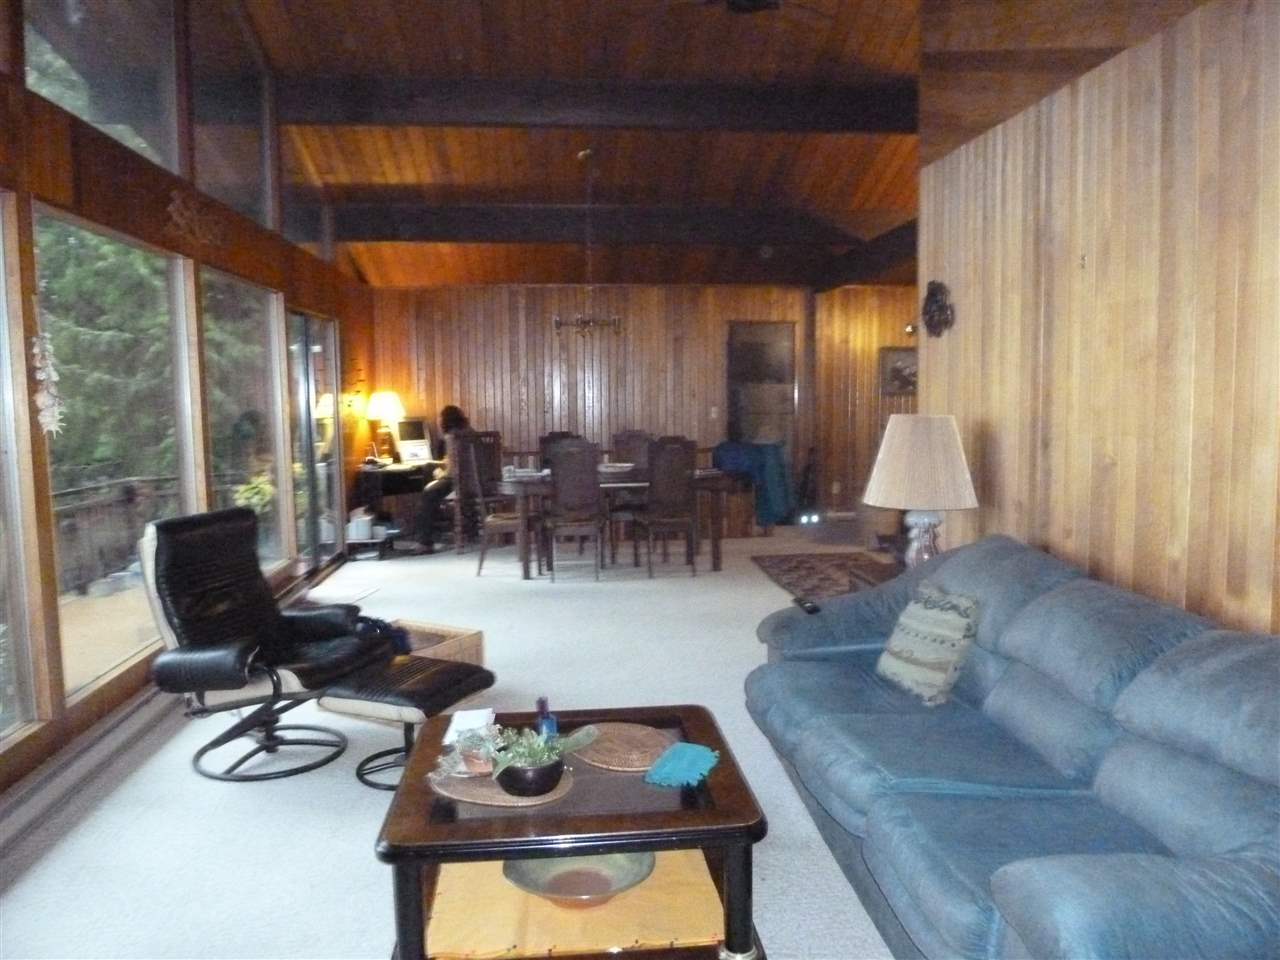 Photo 5: Photos: 5912 DEERHORN Drive in Sechelt: Sechelt District House for sale (Sunshine Coast)  : MLS® # R2118567